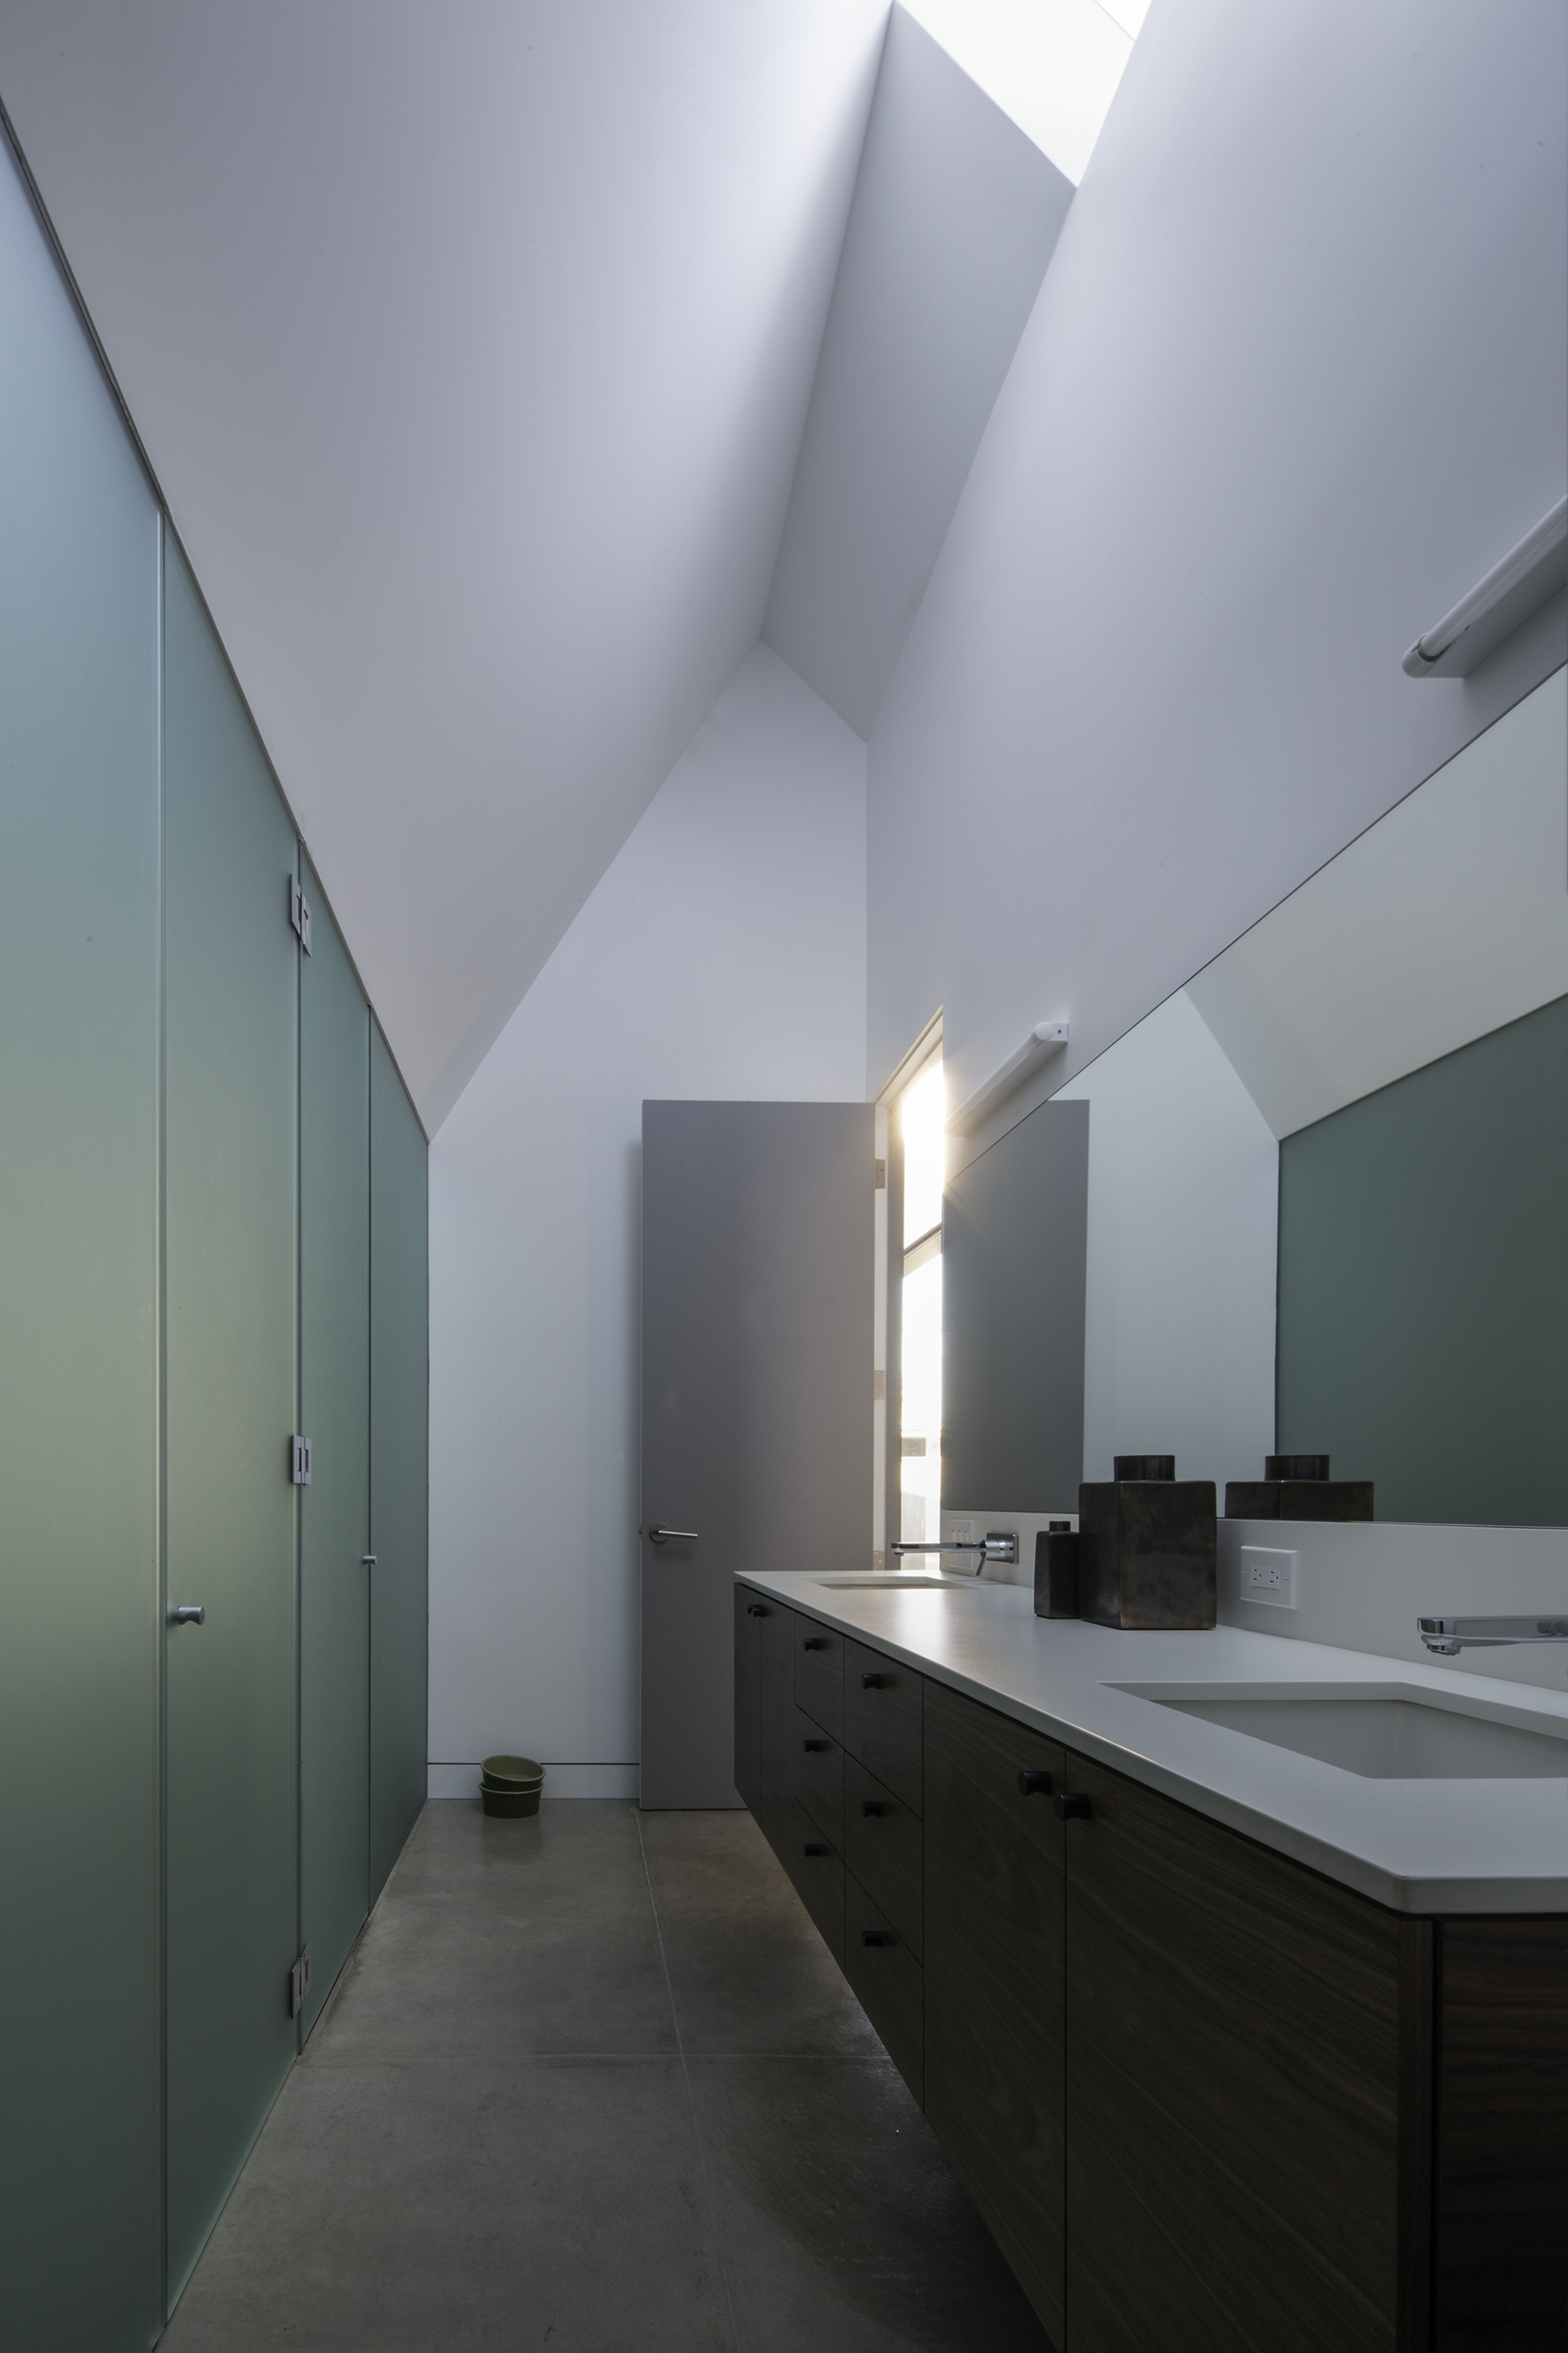 17 Chen + Suchart Studio LLC - Escobar Renovation Image